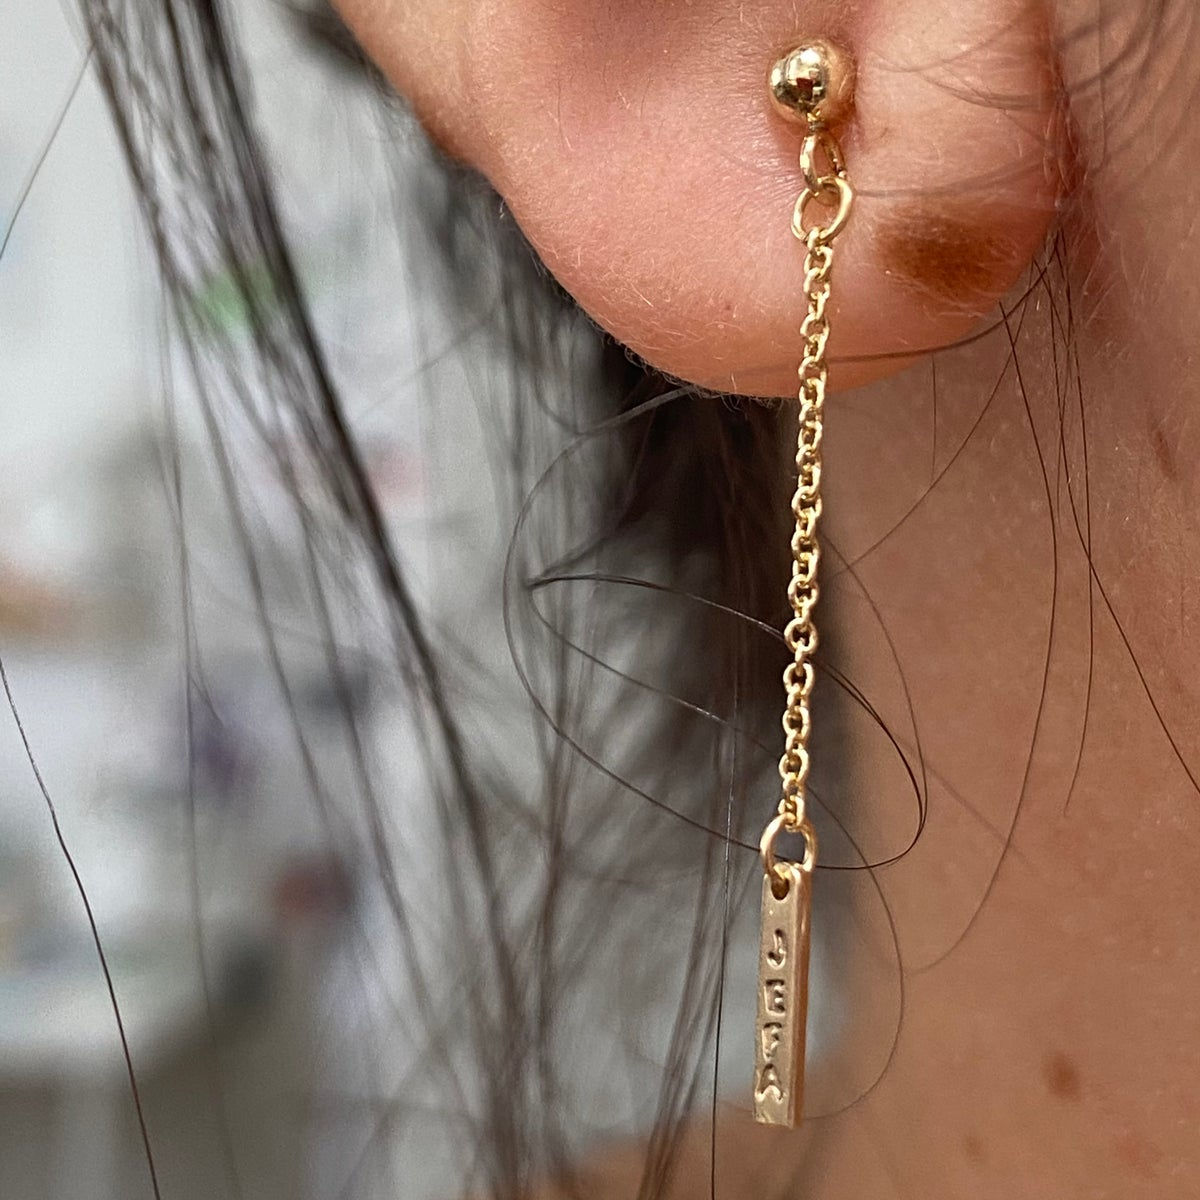 Image of Dainty gold chain and bar single earring